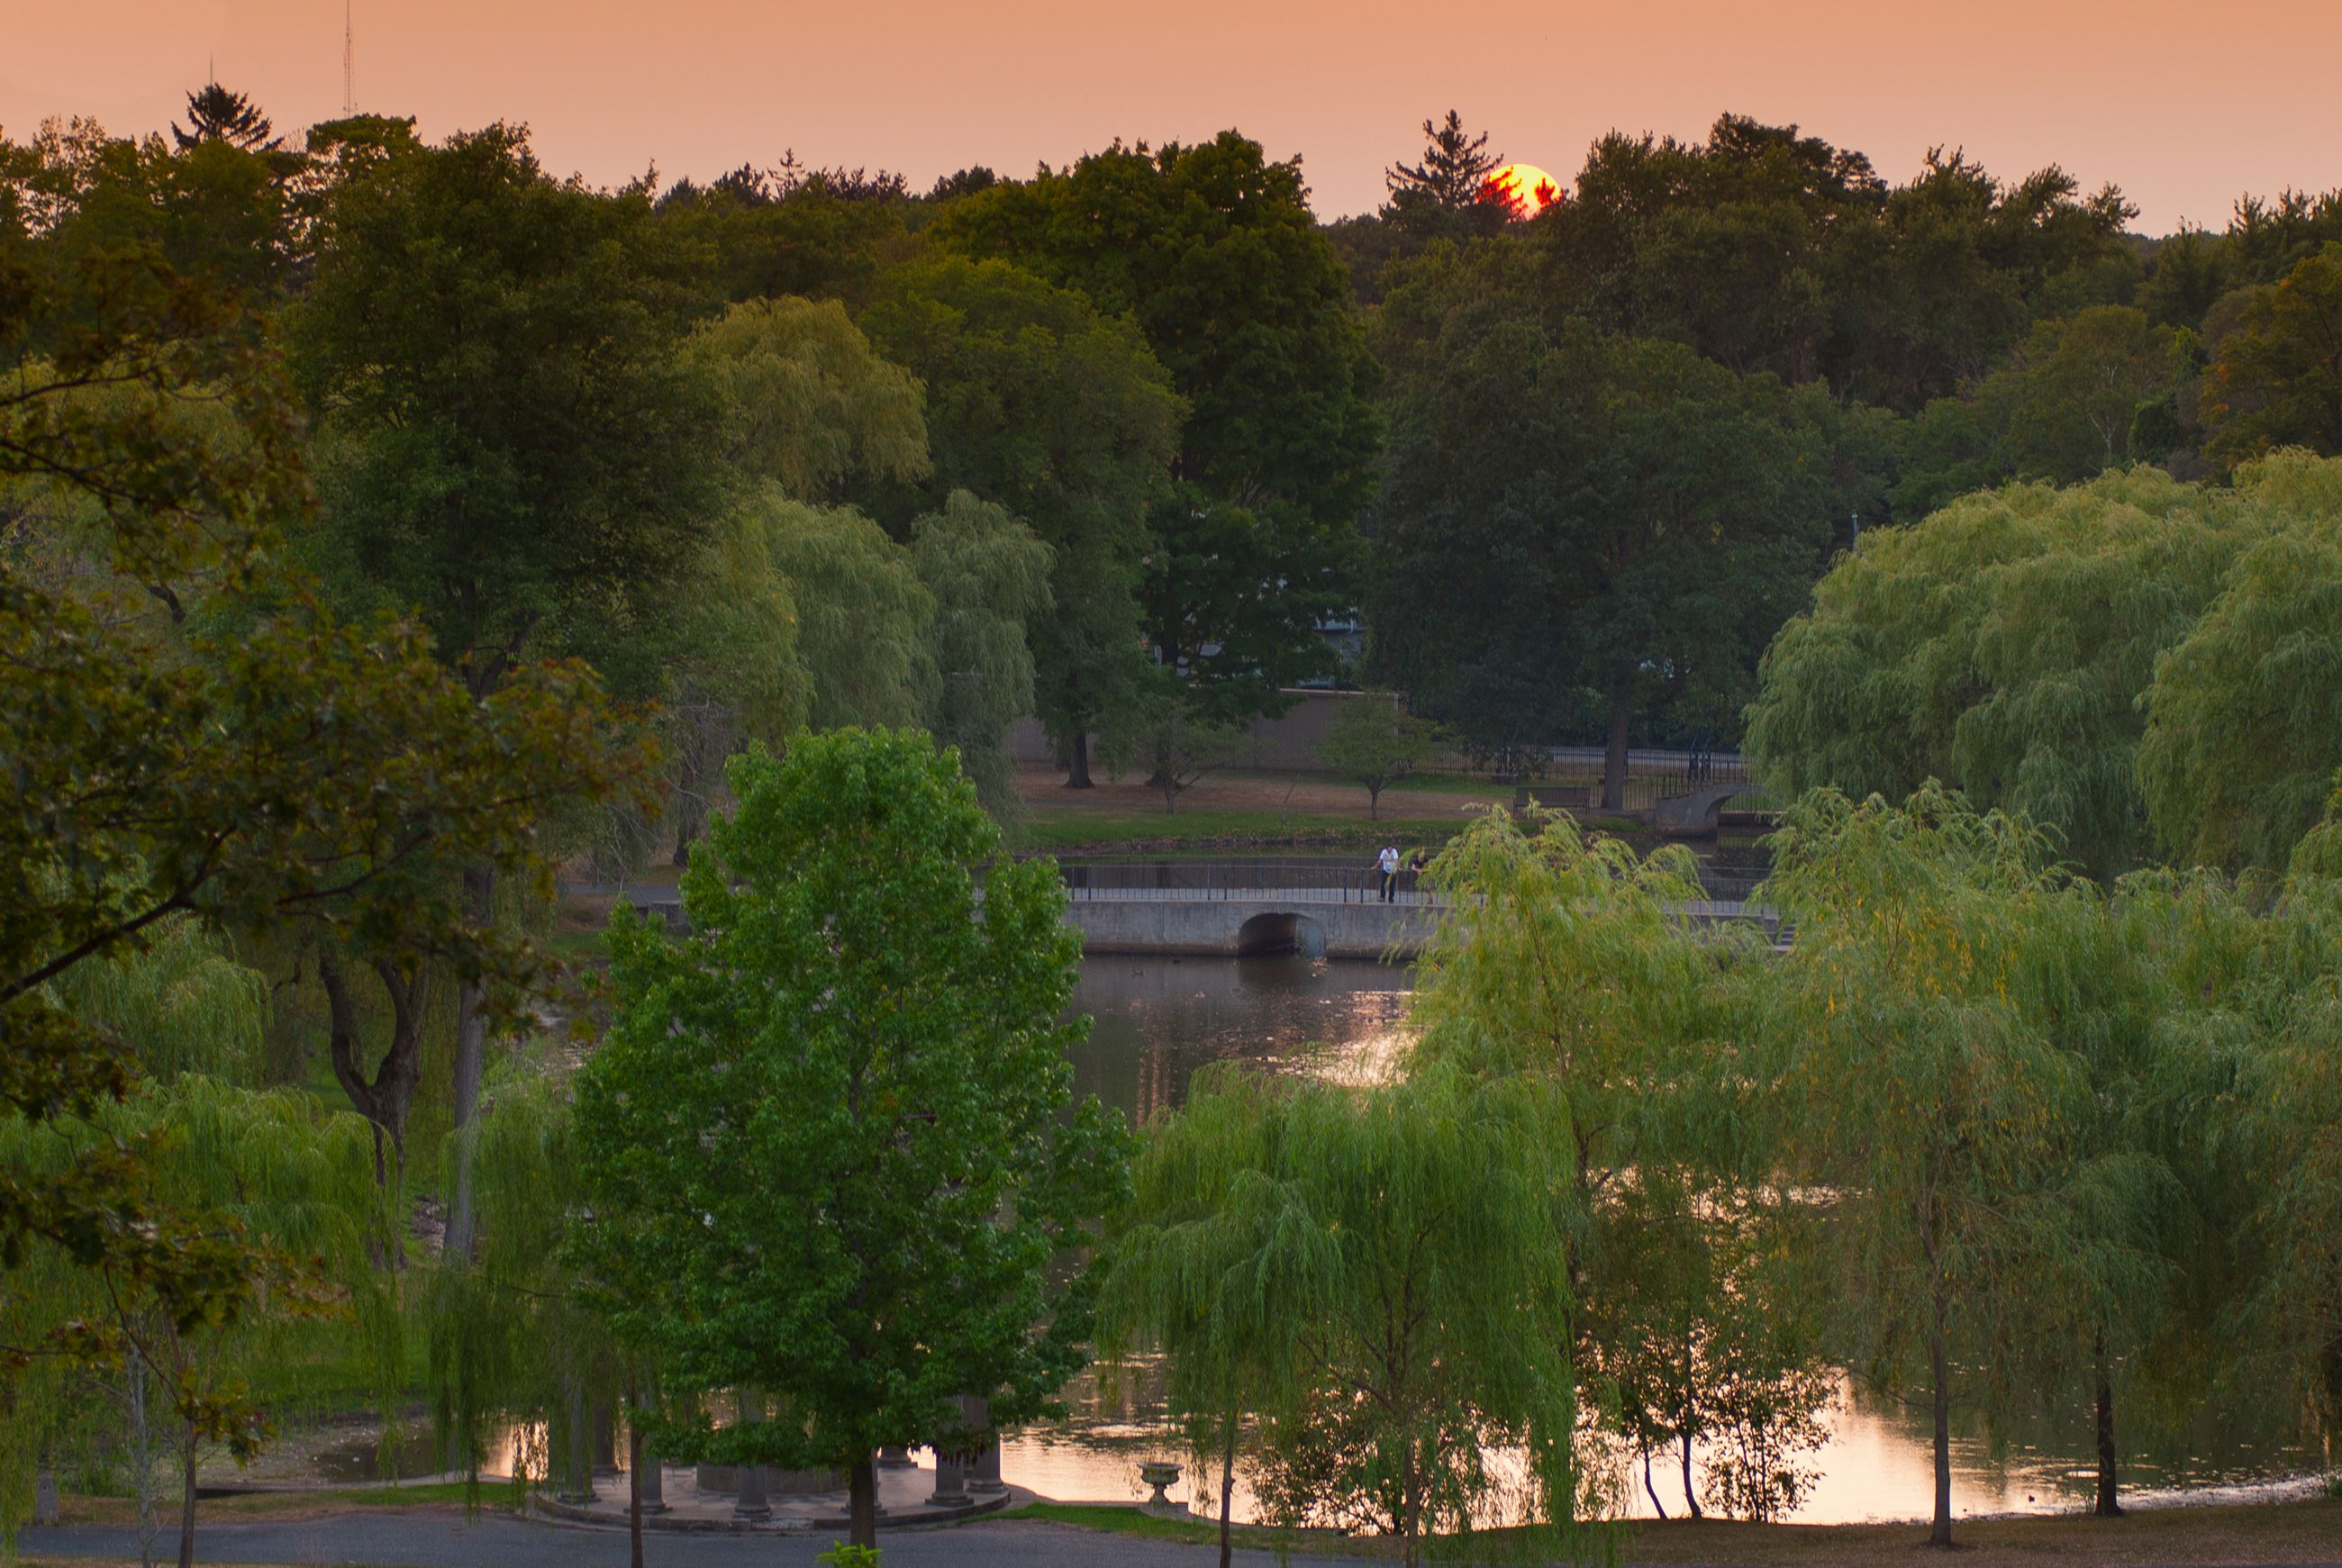 Picture of sunset over Larz Park with trees surrounding the lagoon